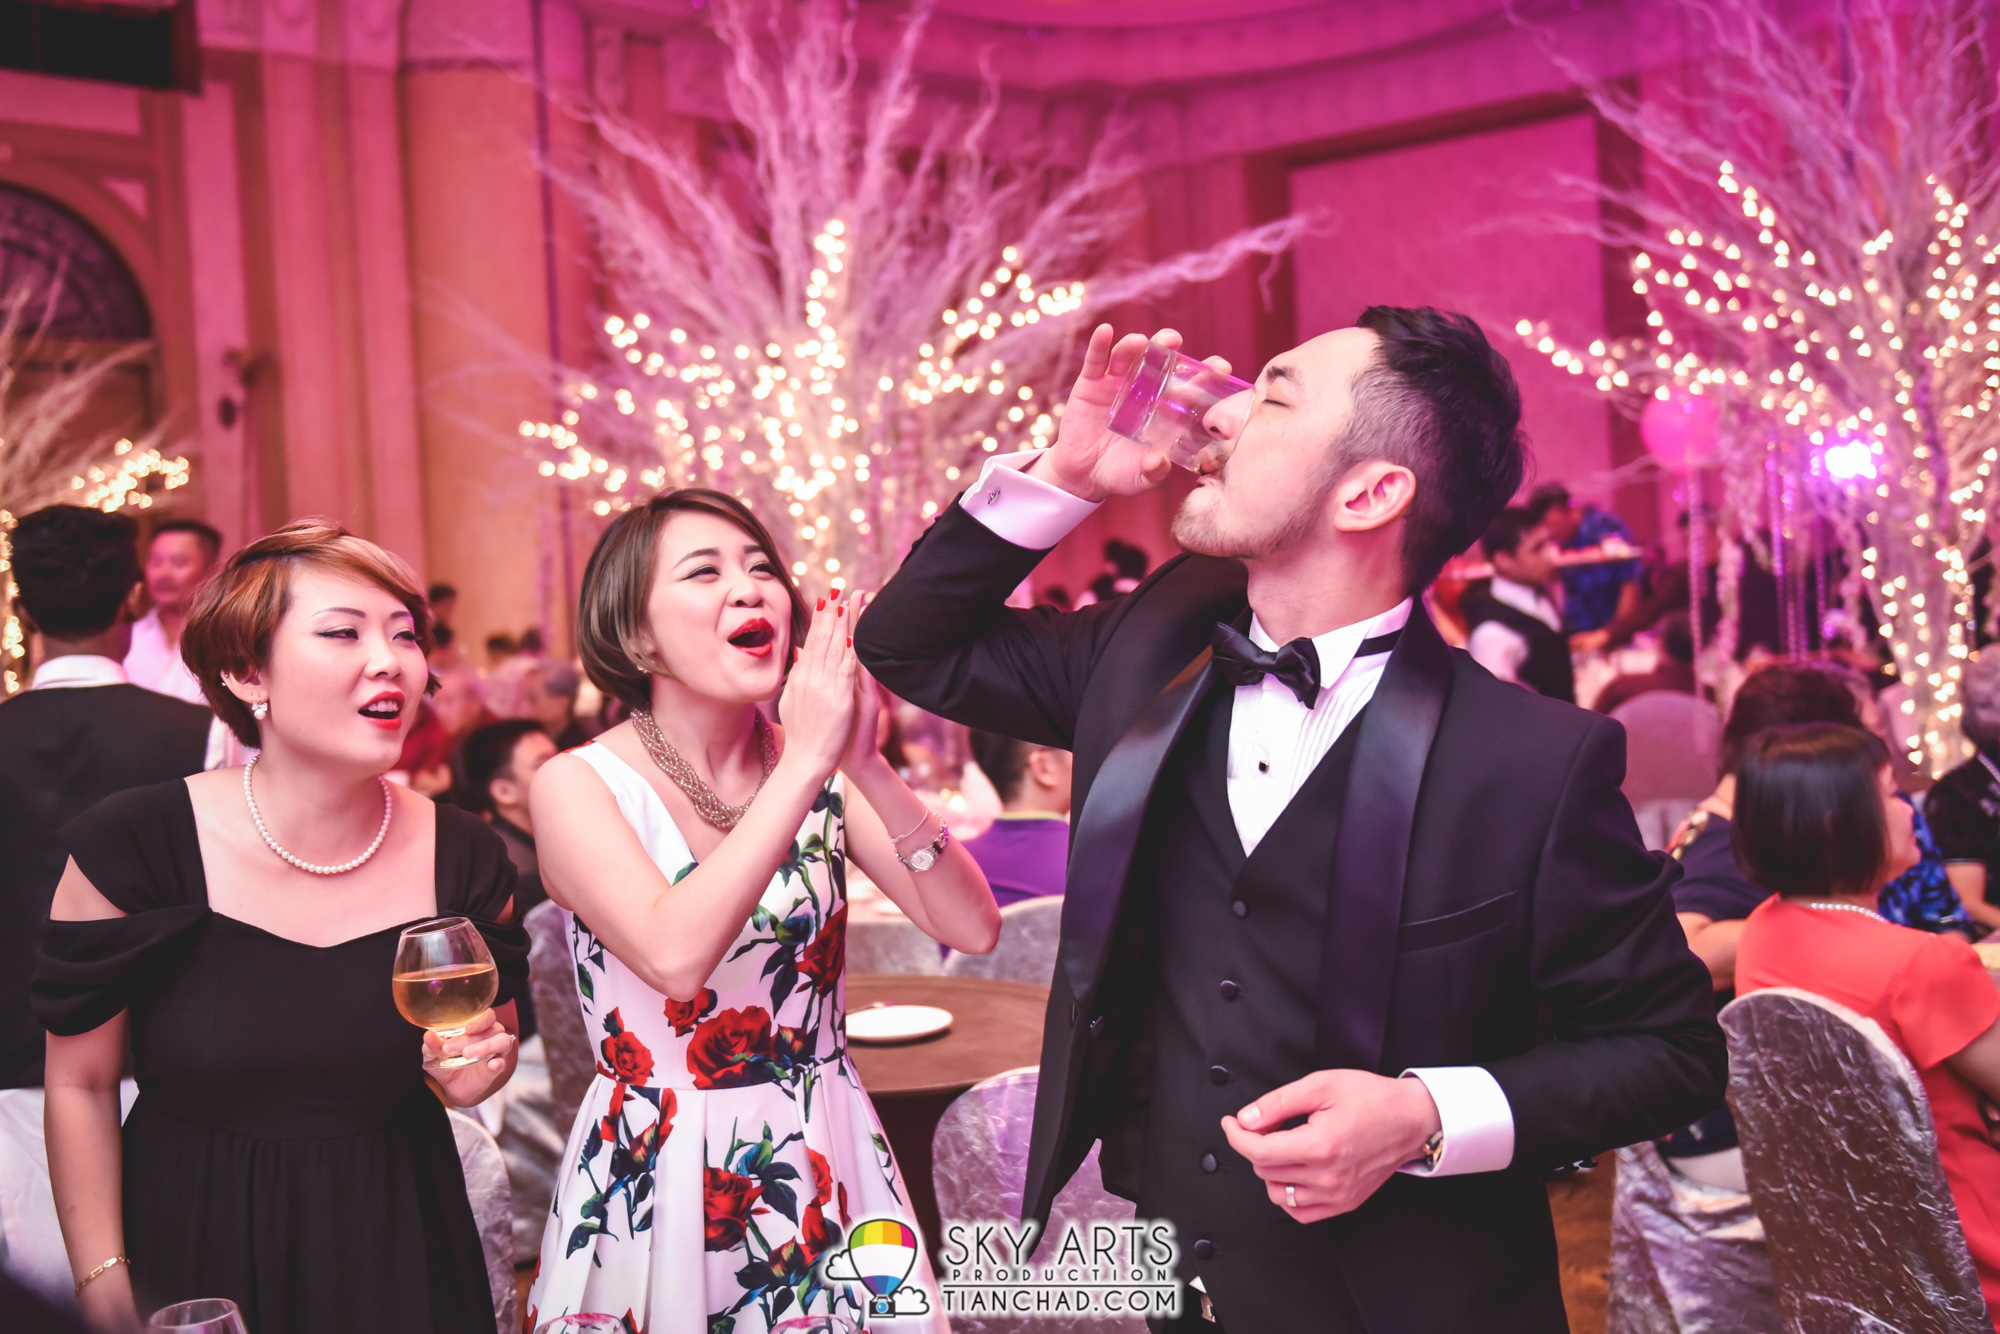 [W] Frank & Karena Wedding Dinner @ JW Marriott KL Hotel